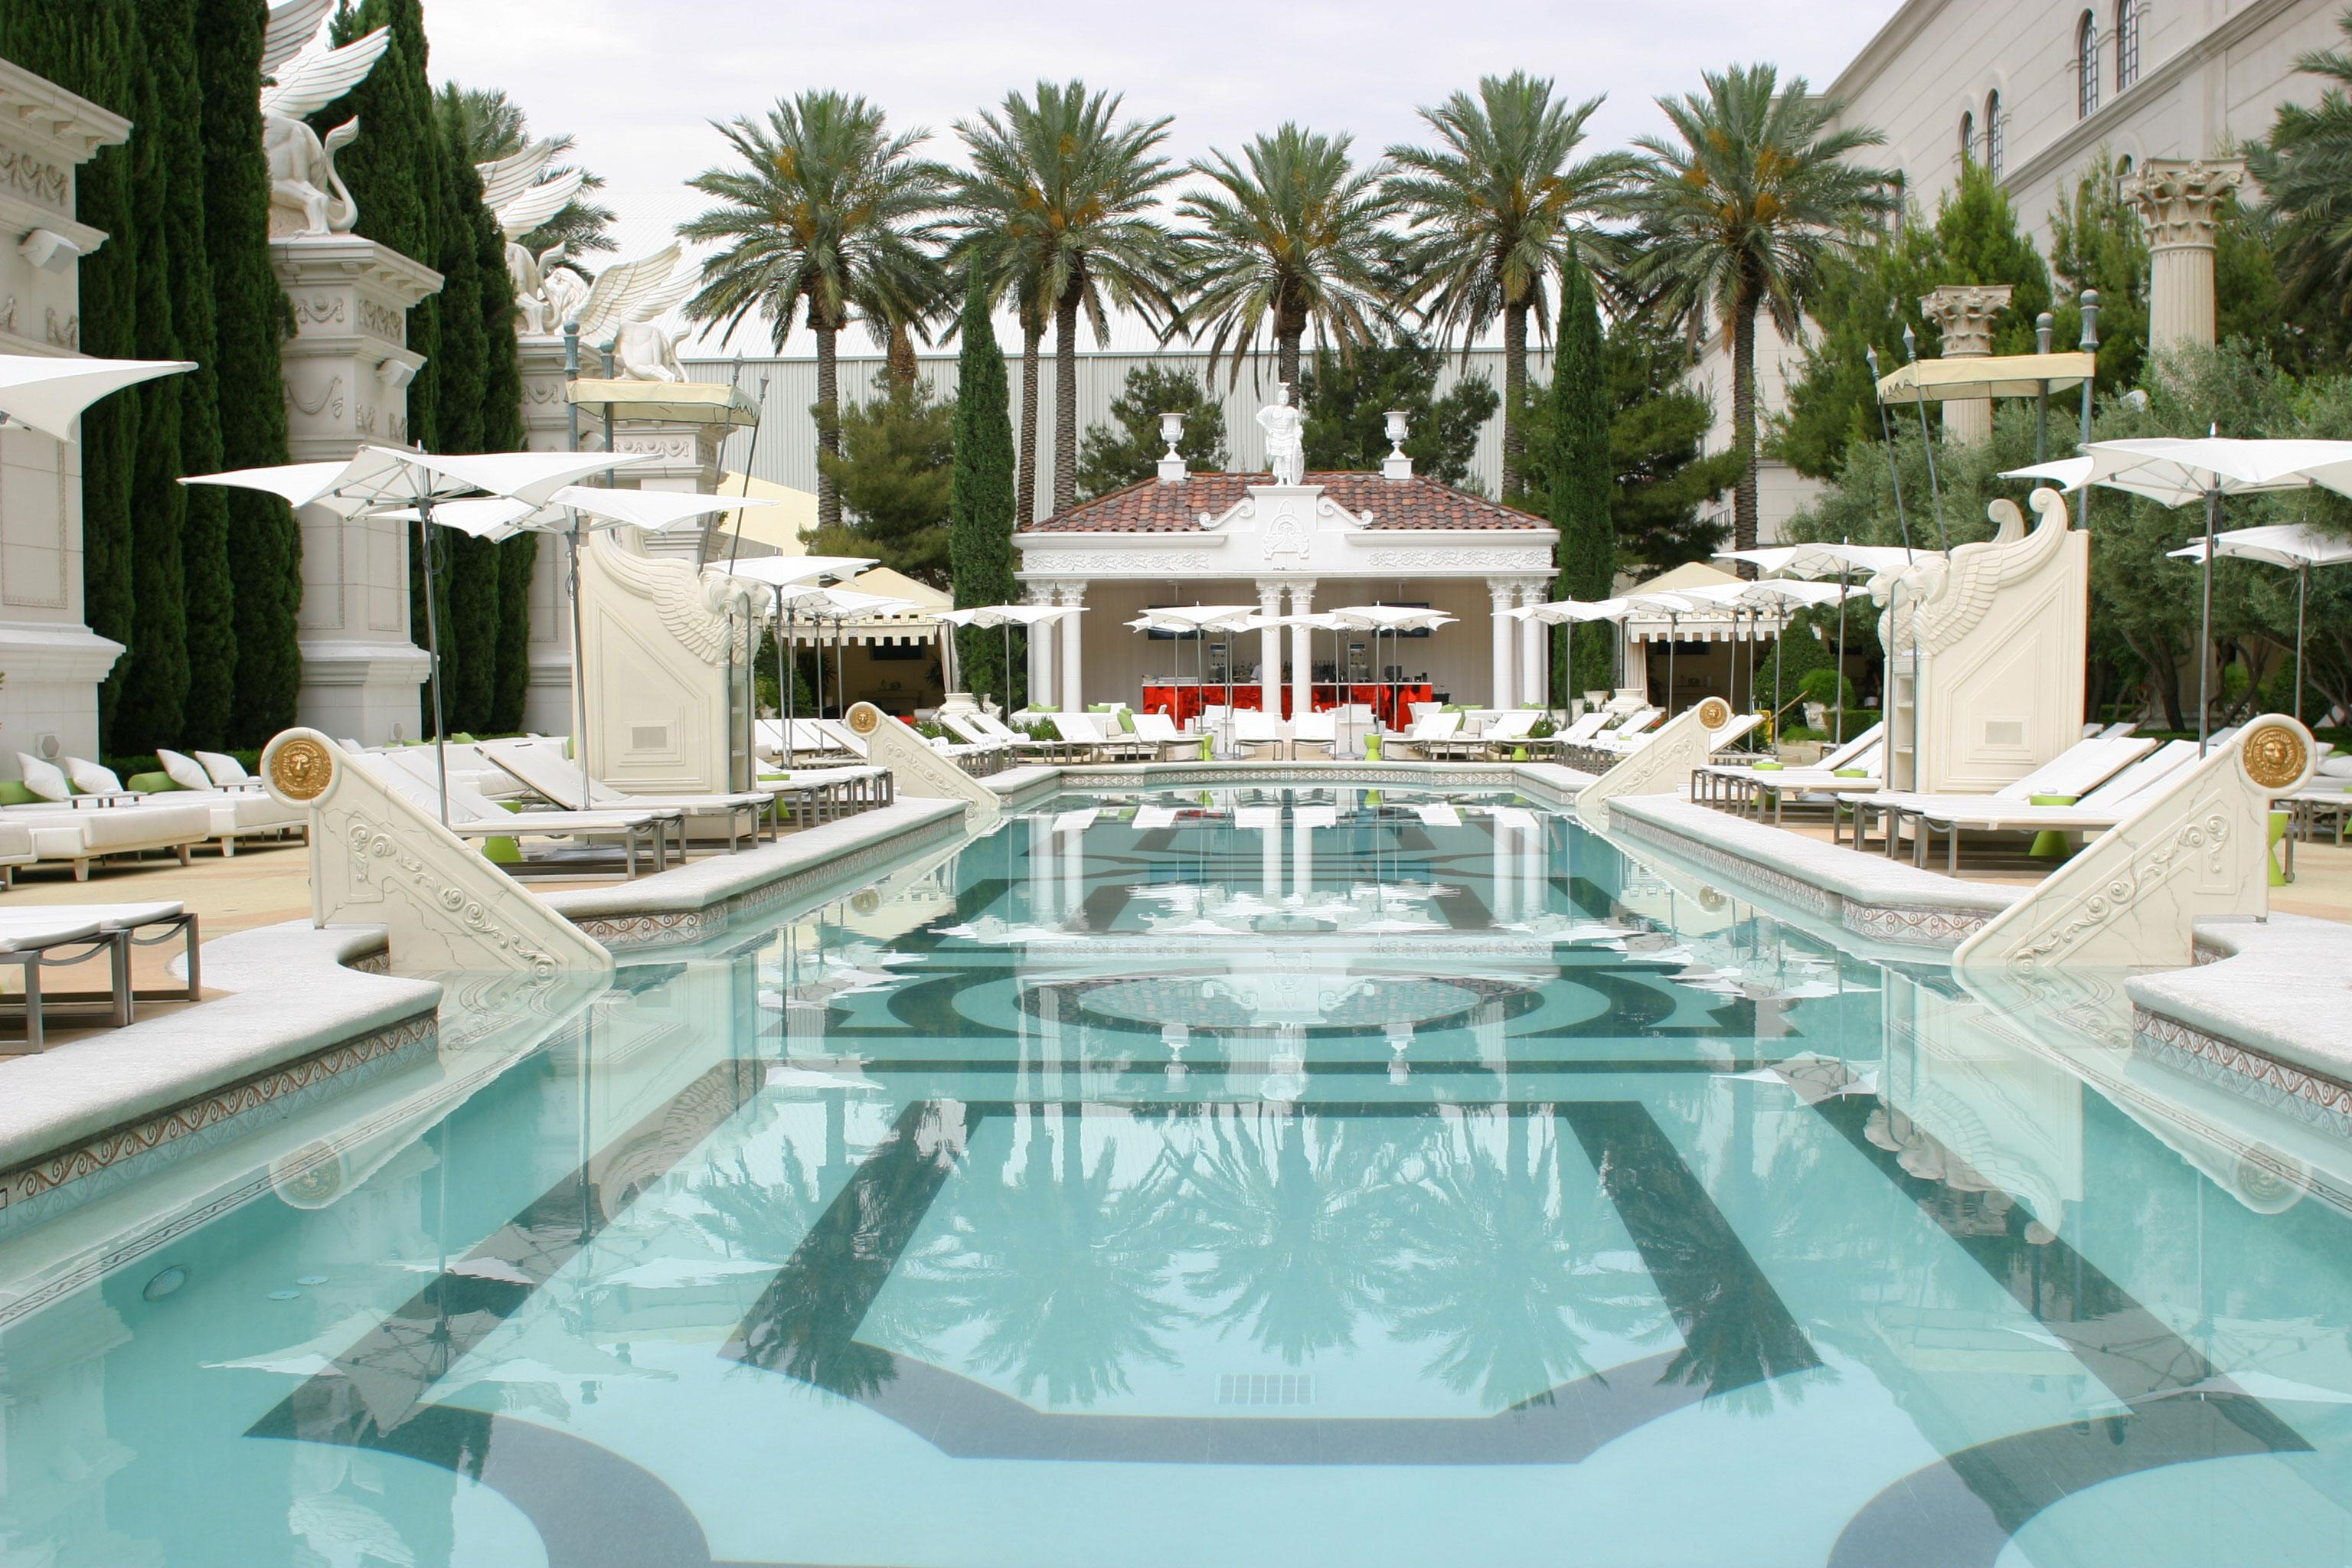 Venus Pool Lounge Cabana Prices & Bottle Service Cost